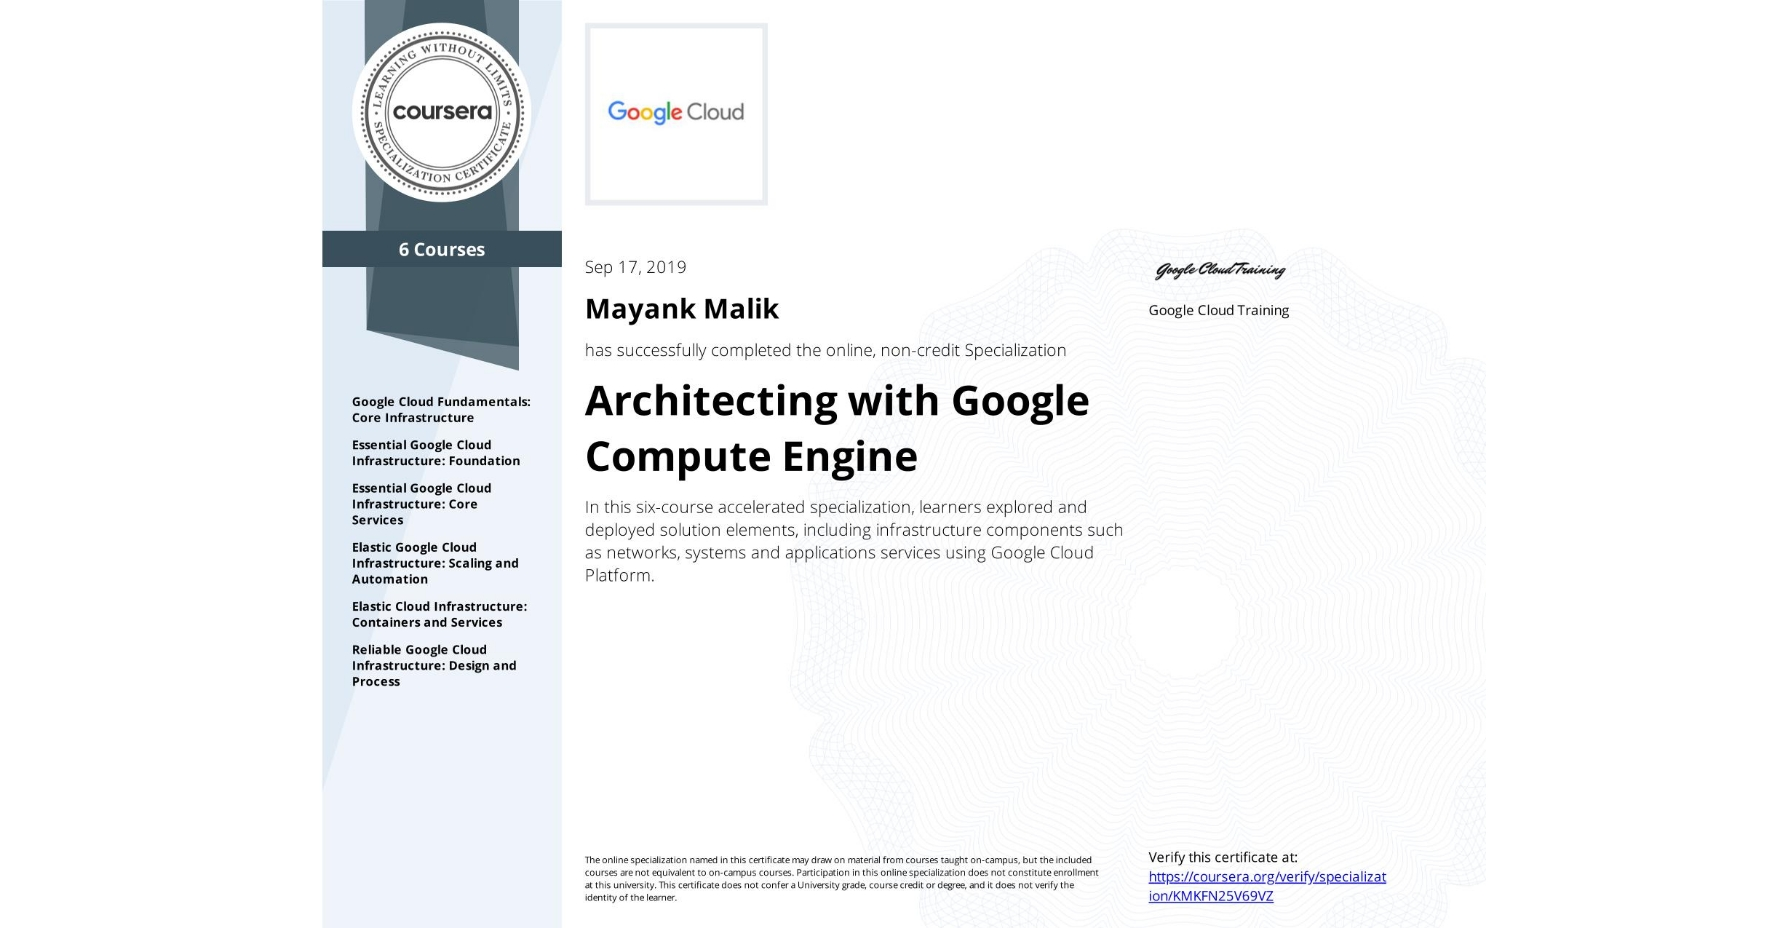 View certificate for Mayank Malik, Architecting with Google Compute Engine, offered through Coursera. In this six-course accelerated specialization, learners explored and deployed solution elements, including infrastructure components such as networks, systems and applications services using Google Cloud Platform.